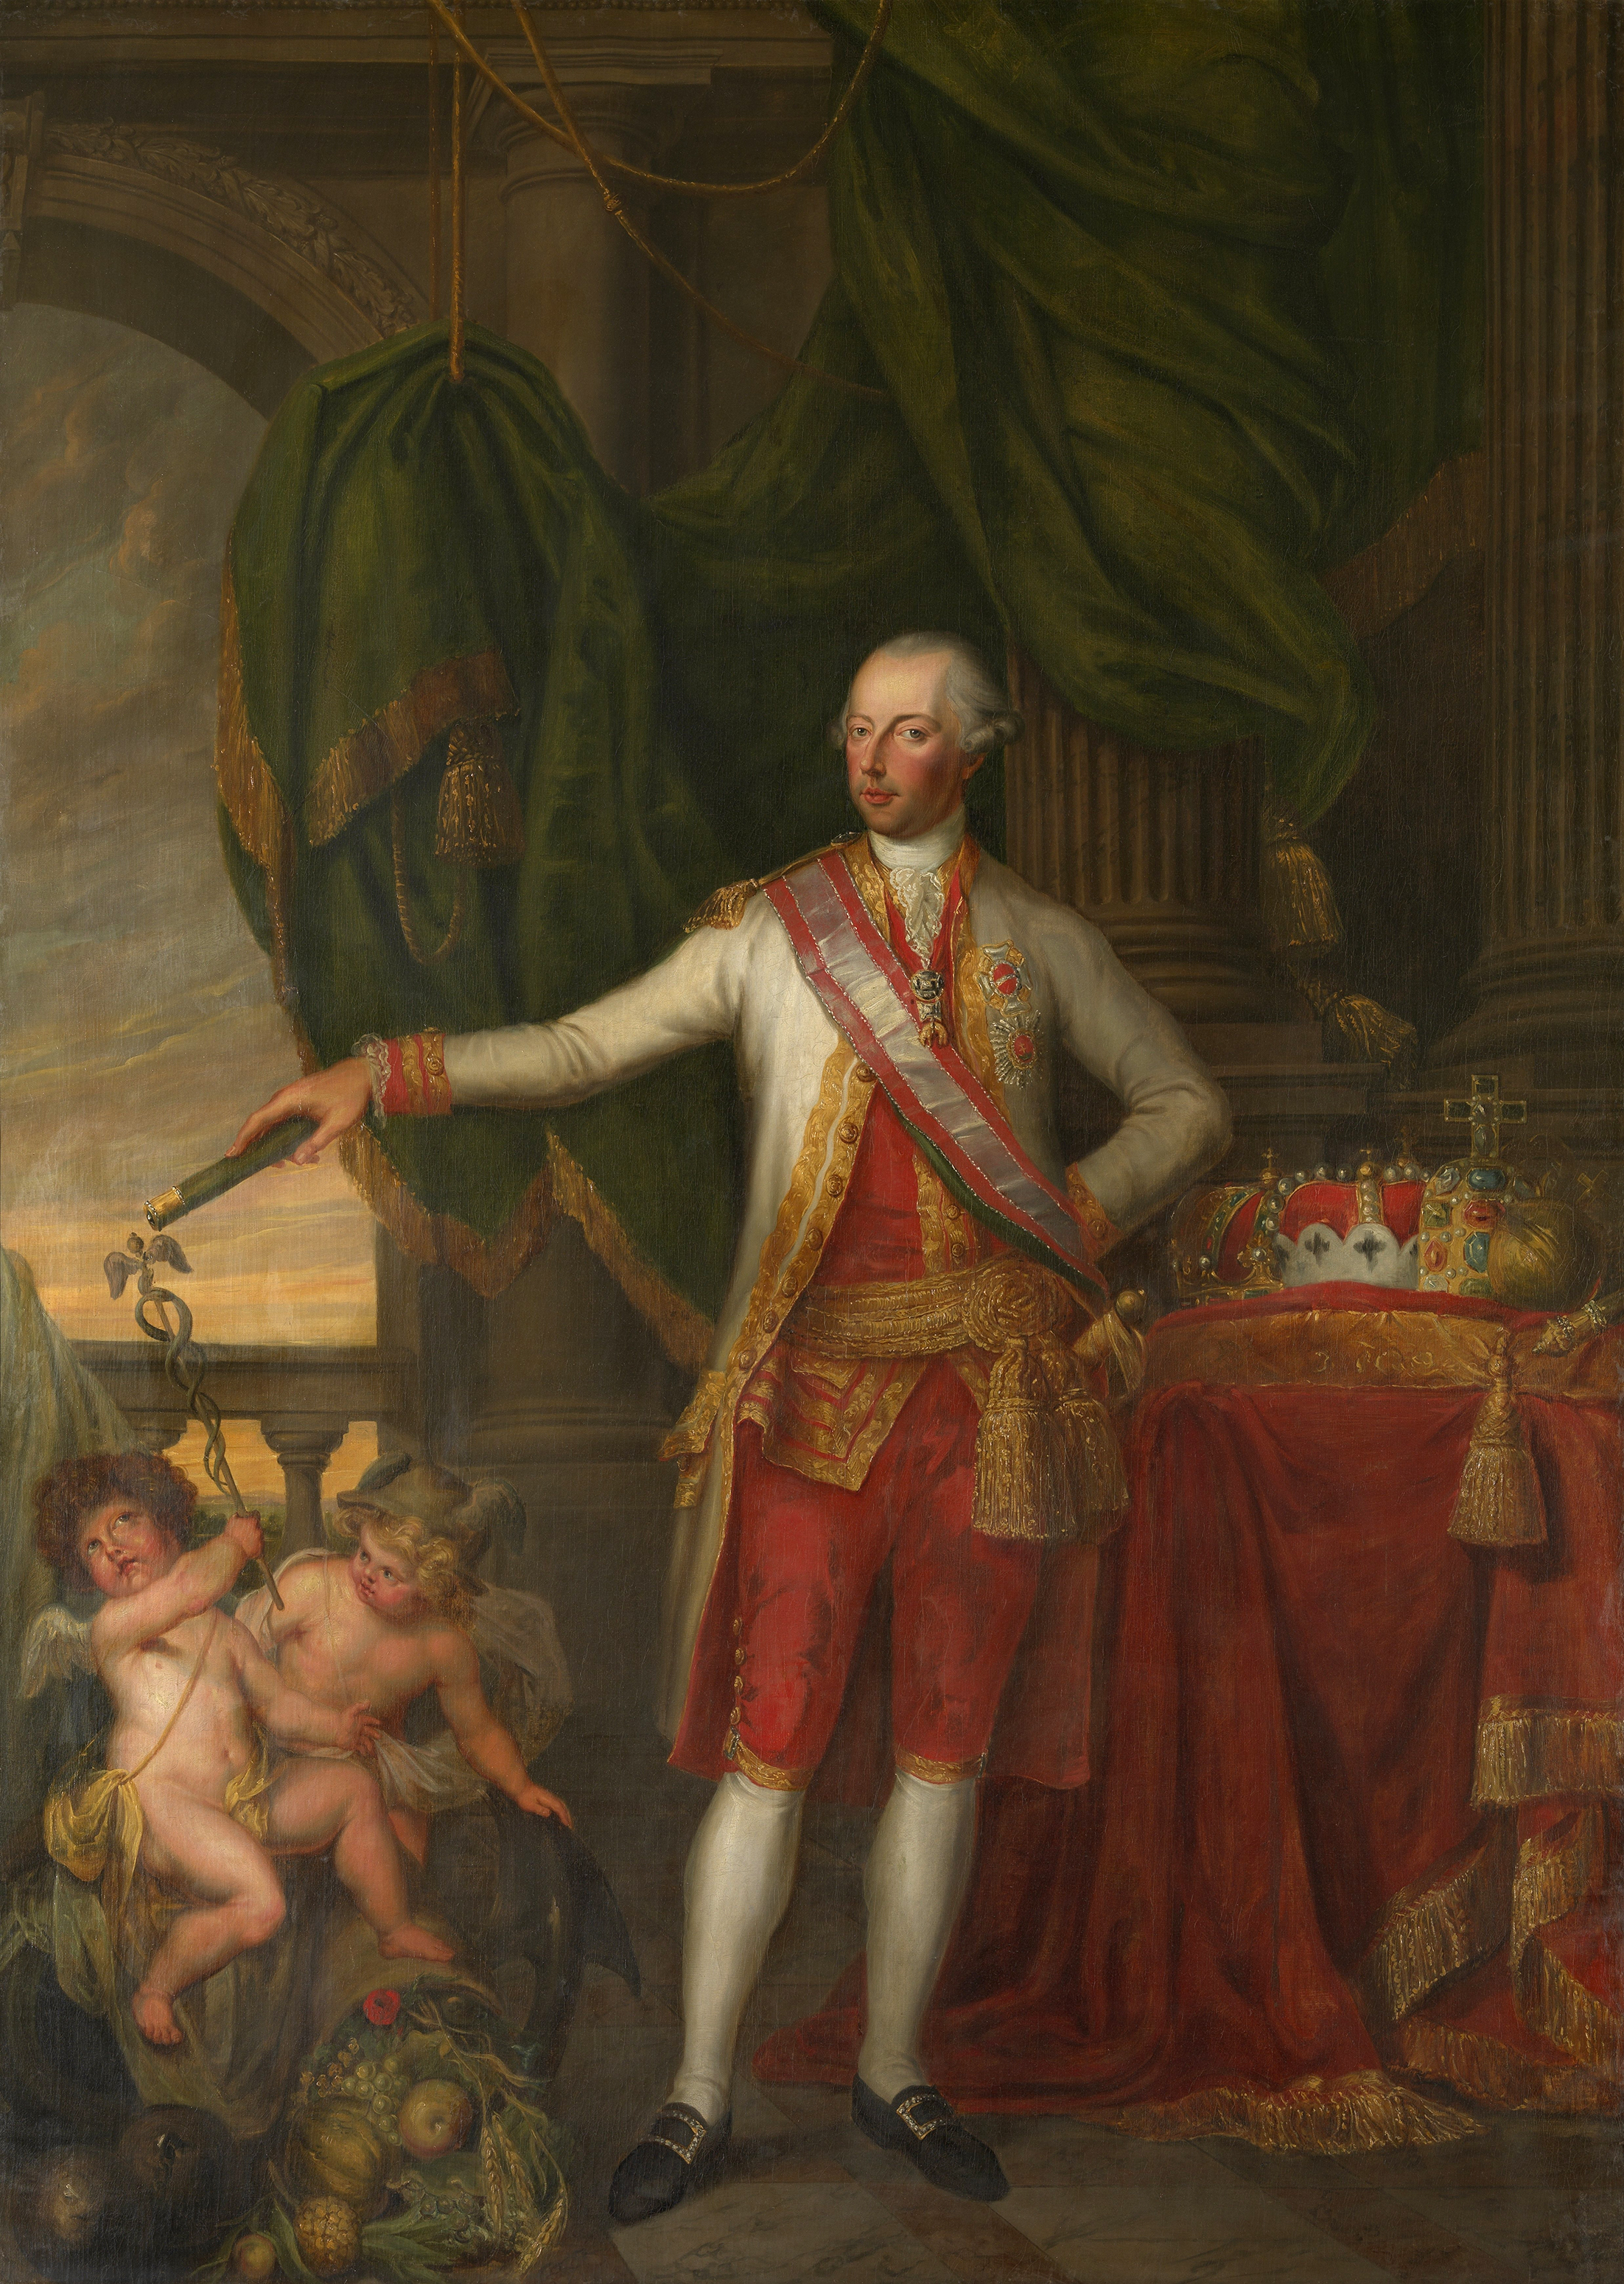 Portrait of Joseph II (1741-1790), Holy Roman Emperor (1765-1790); Archduke of Austria, King of Hungary and Bohemia (1780-1790) | Portraits of Kings